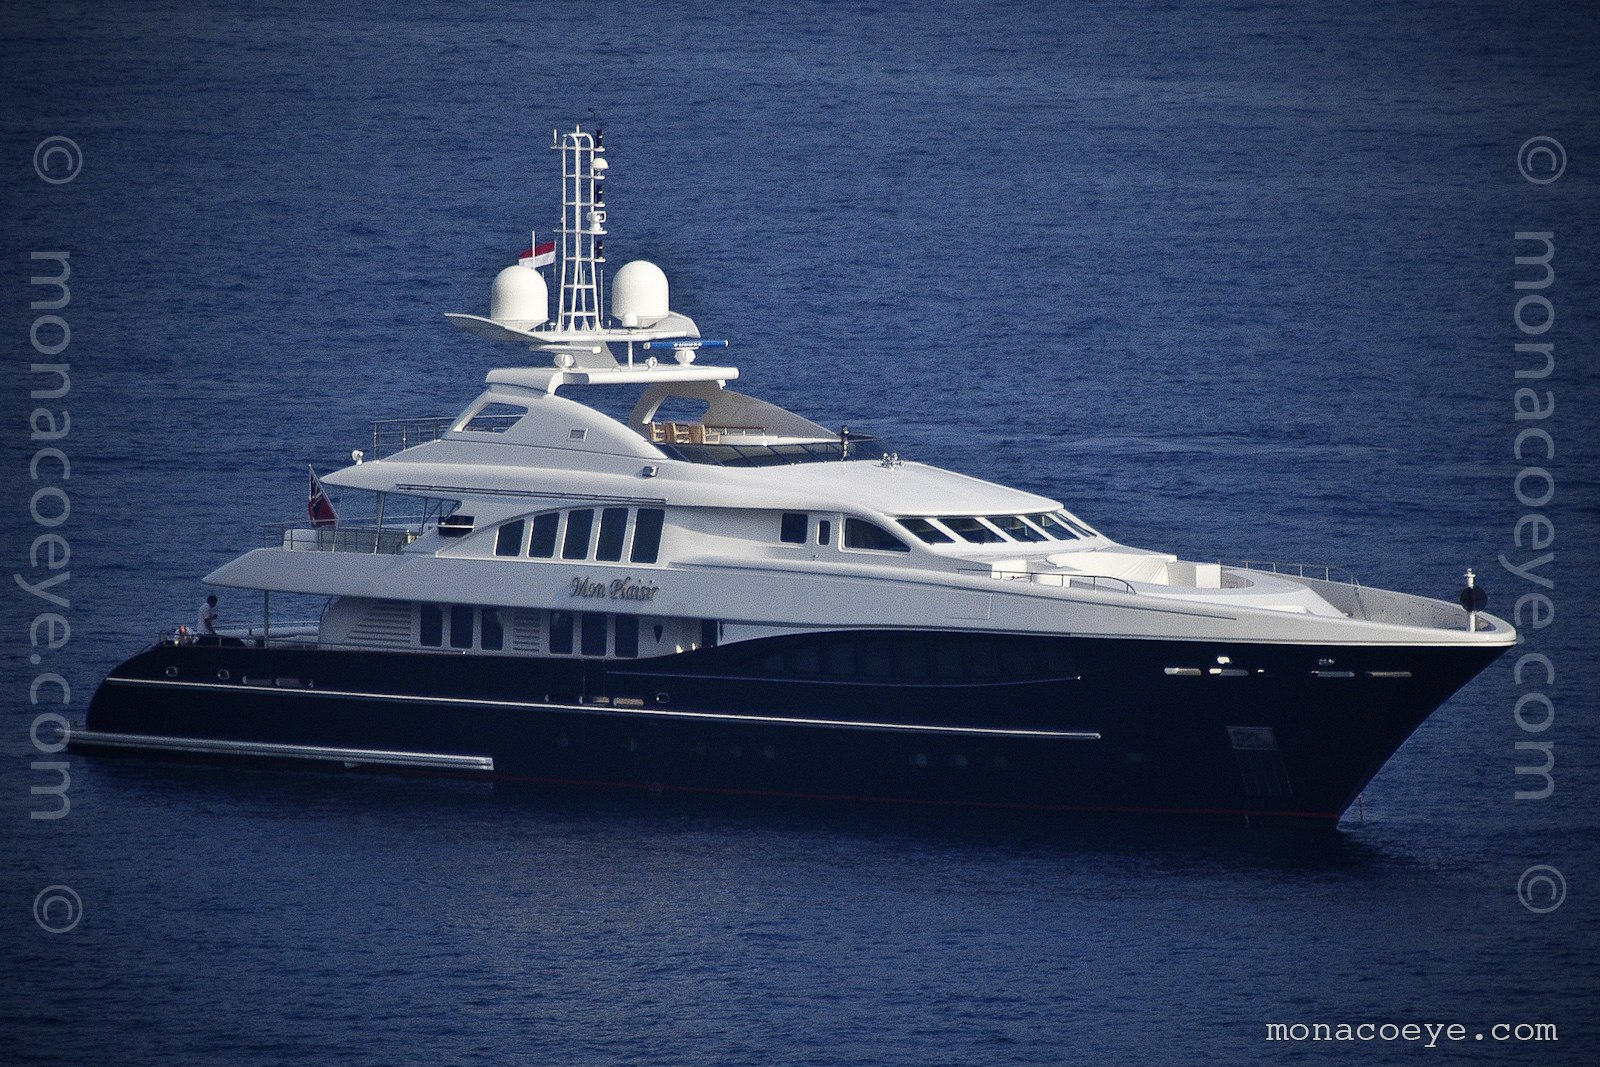 Mon Plaisir, yacht from Heesen. Build number 13547, 2007, 47 metres